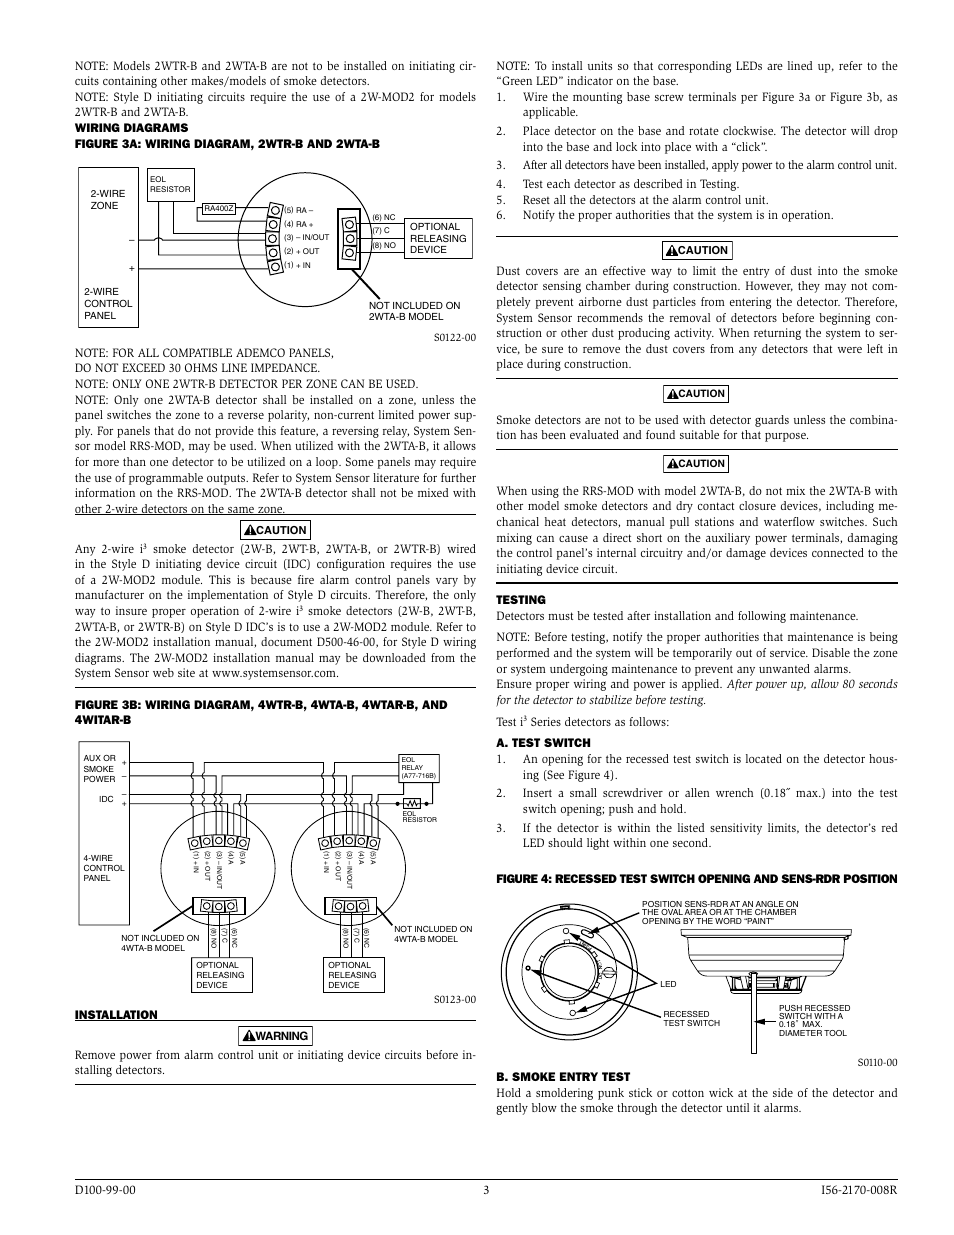 System Sensor I3 Series Thermal Detectors User Manual Page 3 4 2wire Smoke Detector Wiring Diagram